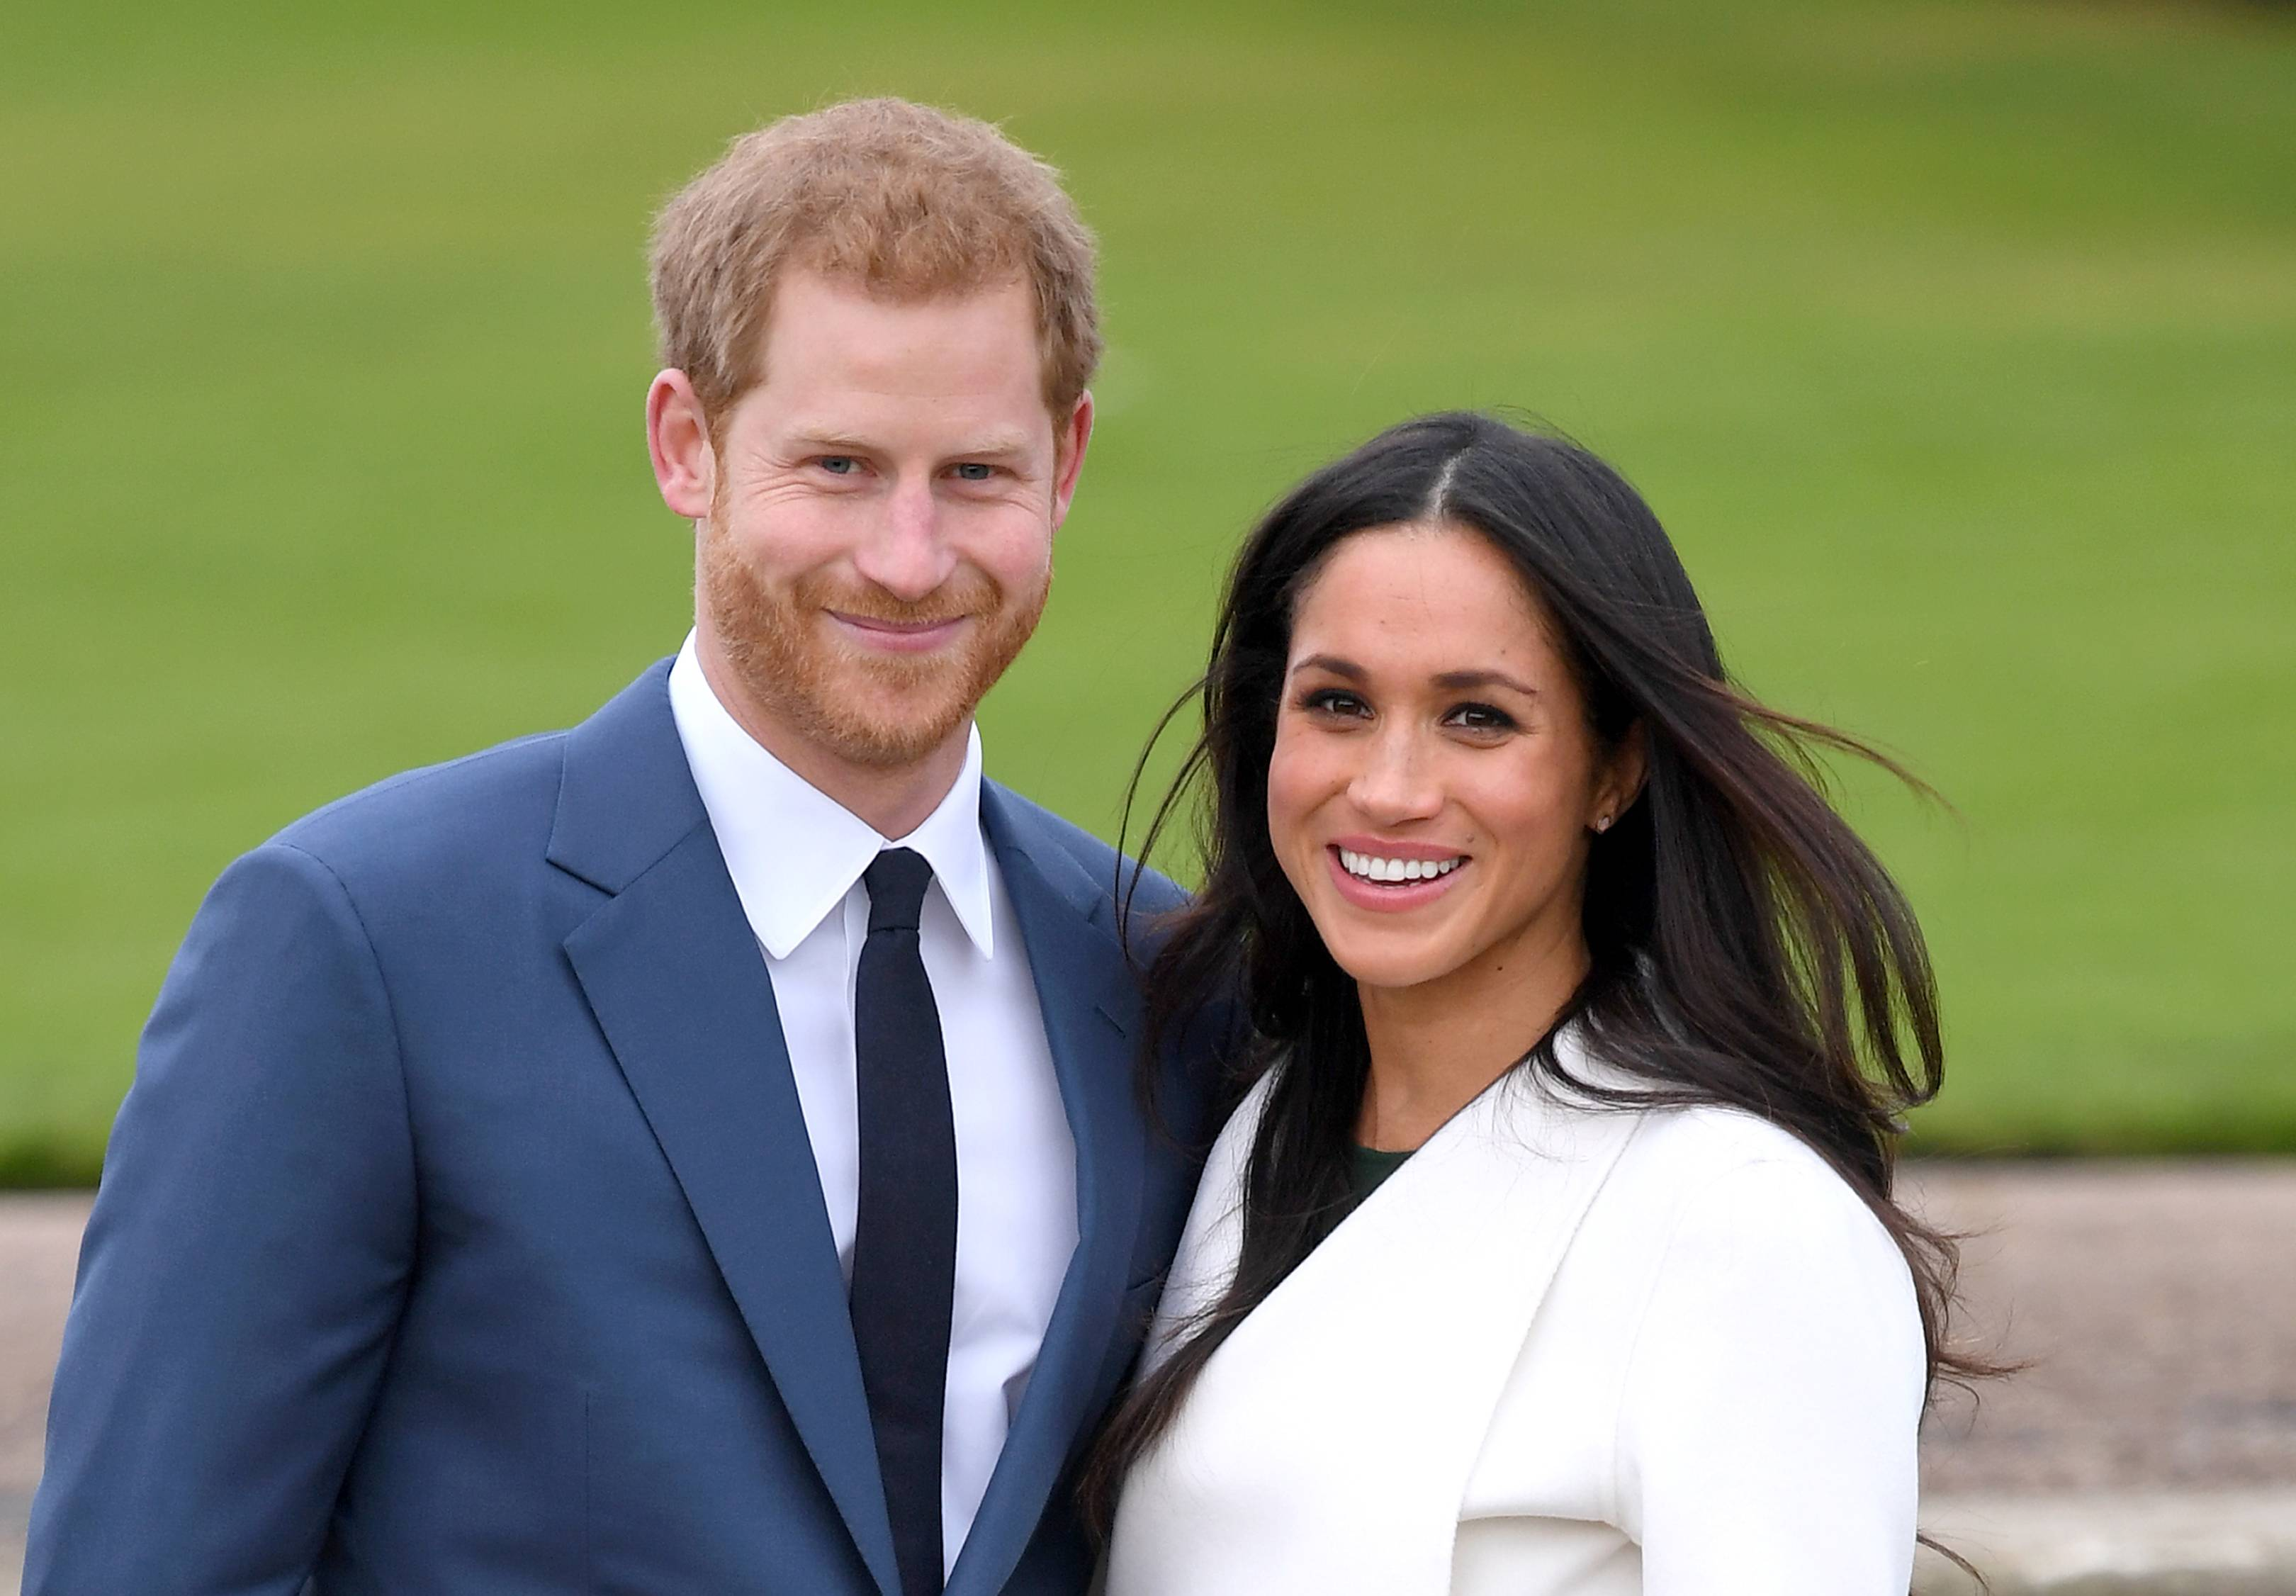 Where To Watch The Royal Wedding.Where To Watch The Royal Wedding House Garden